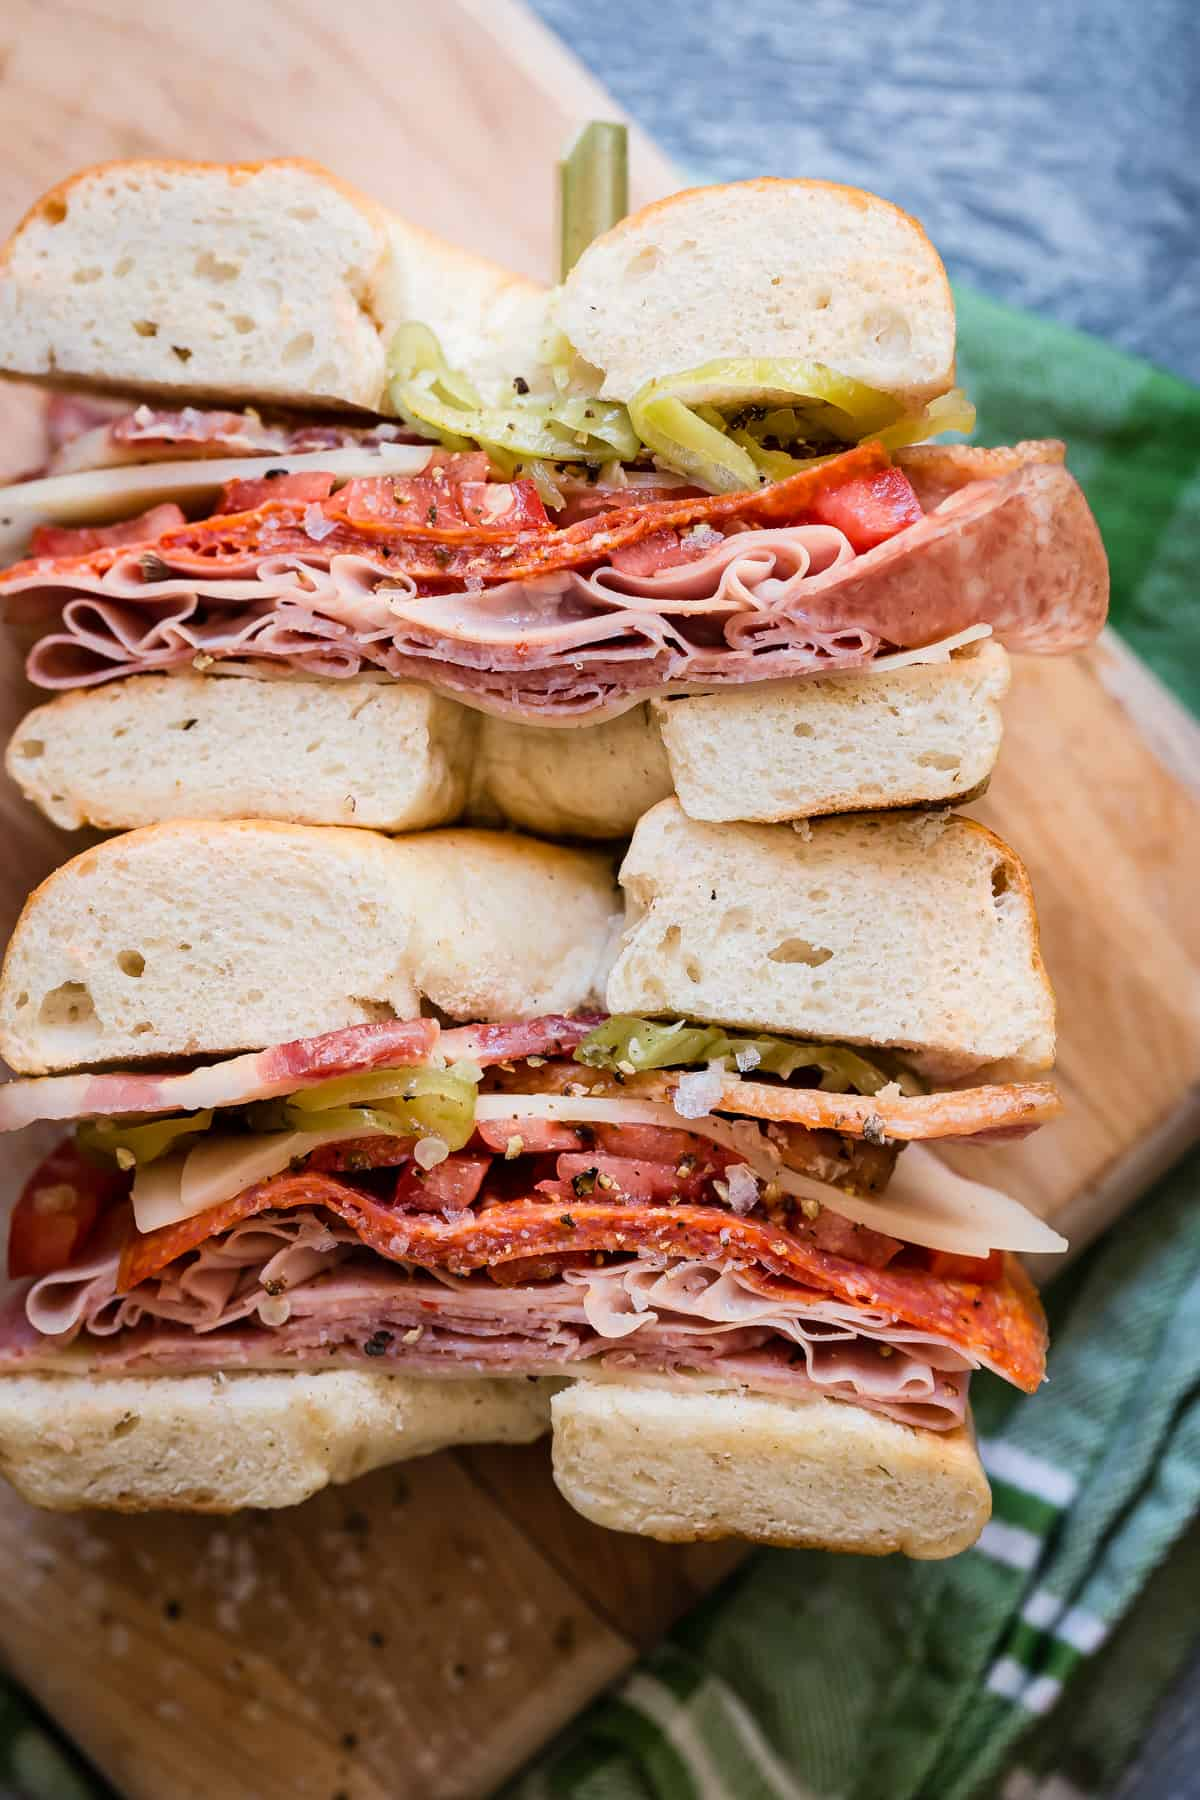 Check out this fully loaded Italian style bagel sandwich for lunch!